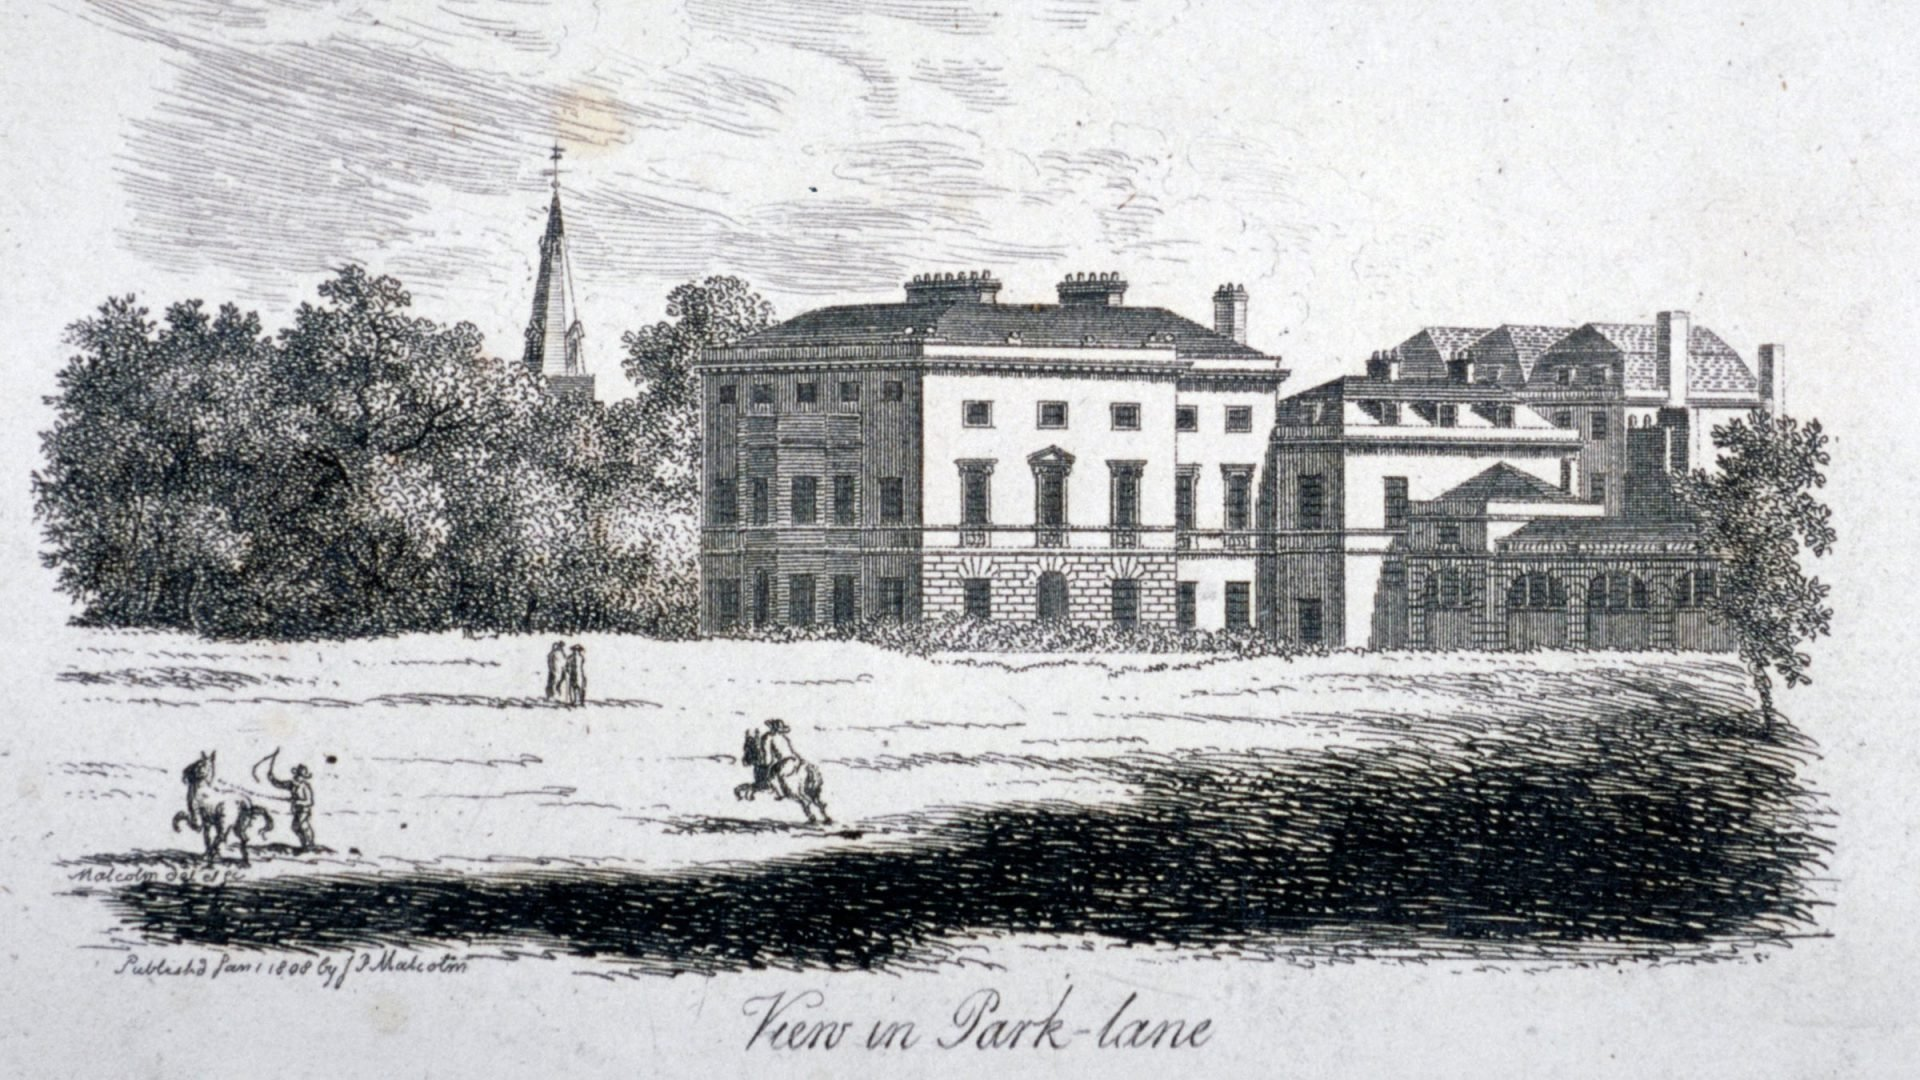 London Park Lane Dorchester House in 1792